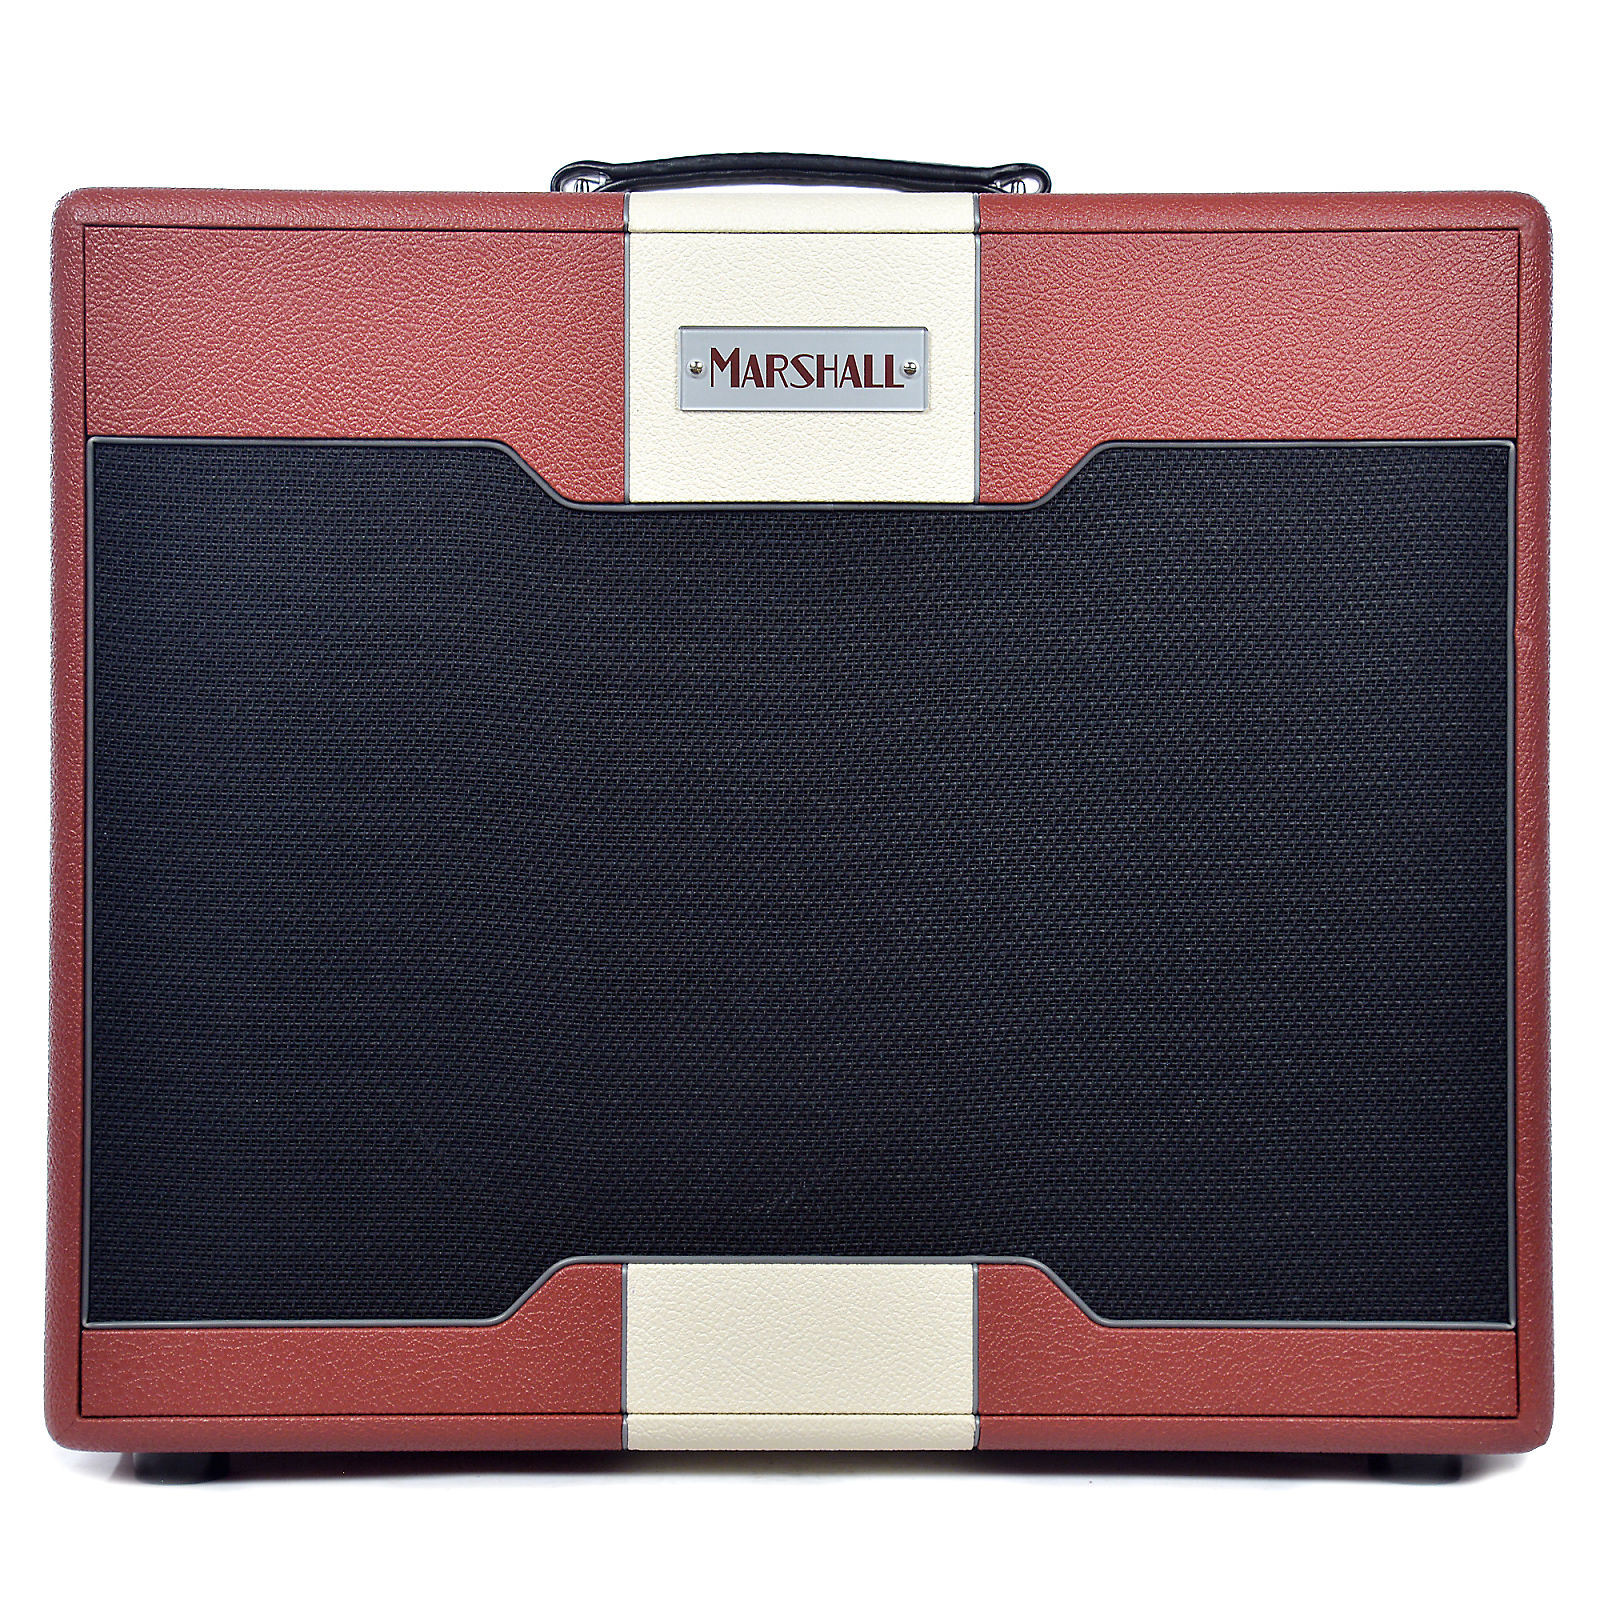 marshall astoria custom ast2 30w 1x12 hand wired tube guitar reverb. Black Bedroom Furniture Sets. Home Design Ideas